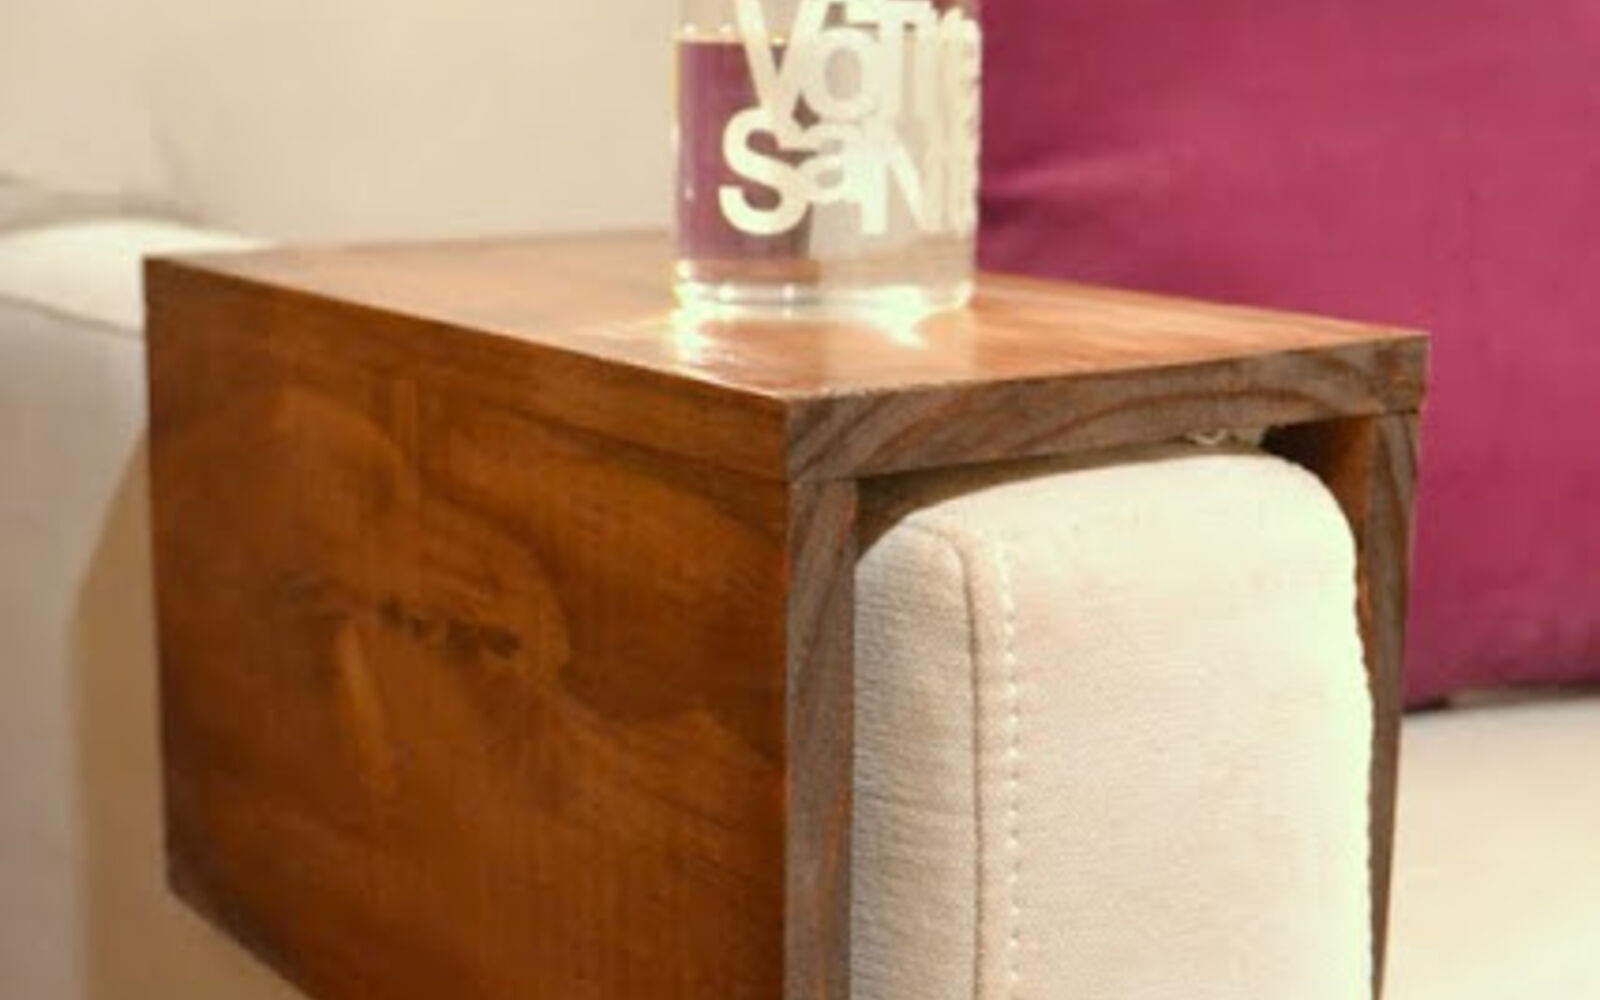 s hide your couch s wear and tear with these great ideas, Add a wooden couch sleeve